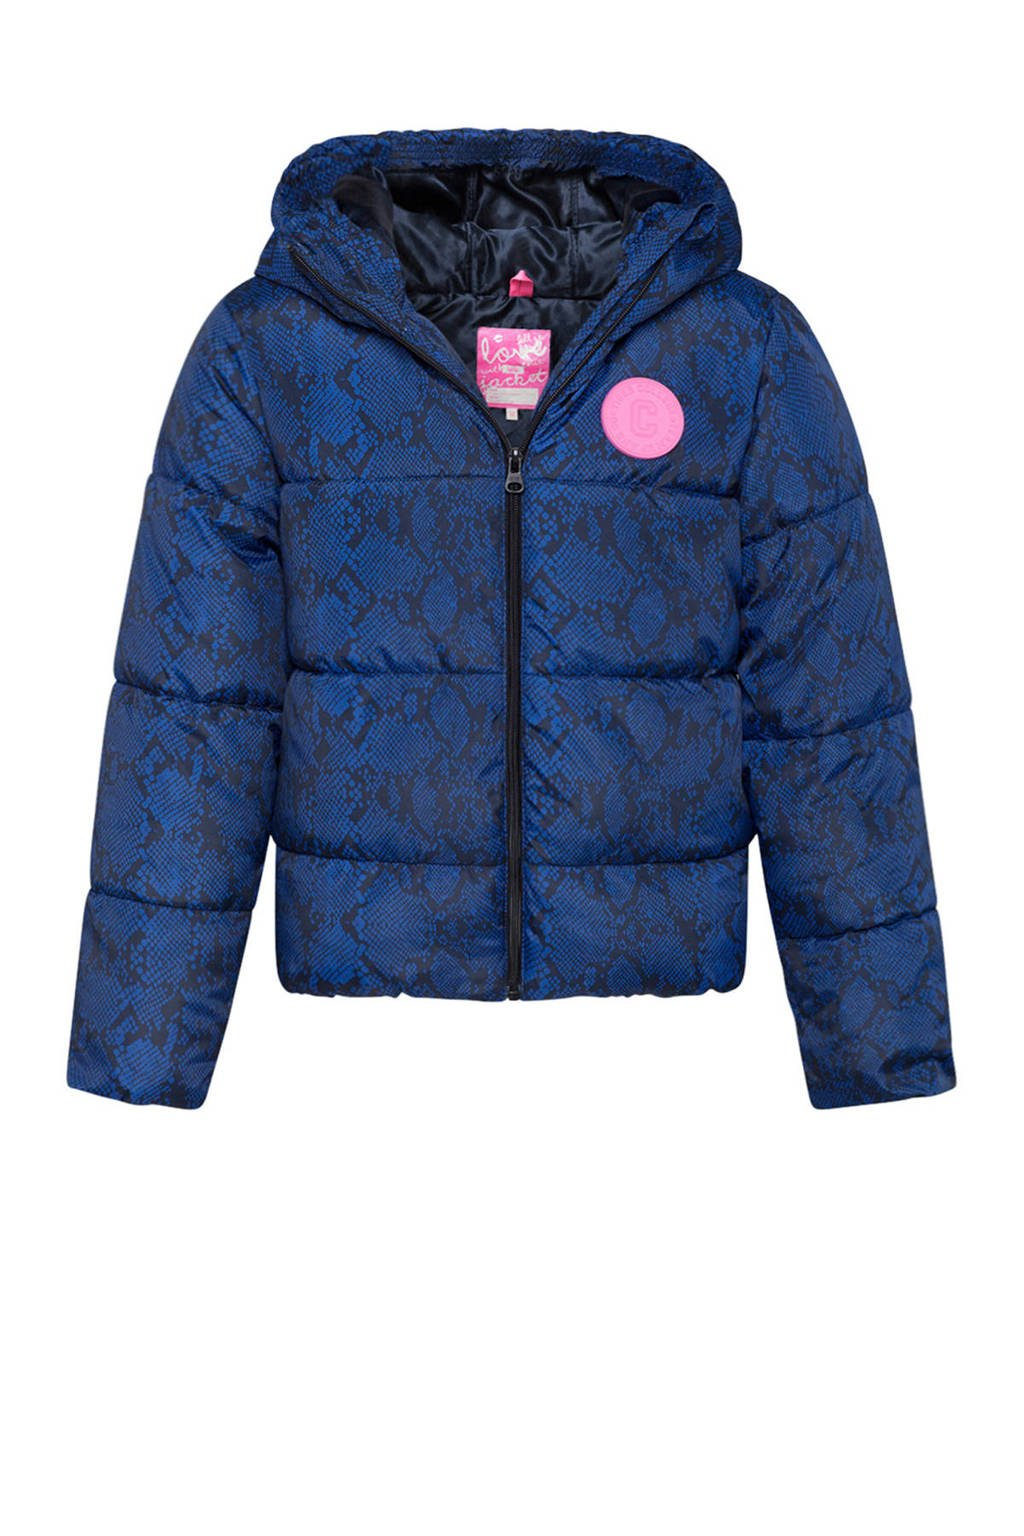 WE Fashion winterjas met slangenprint blauw, Donkerblauw